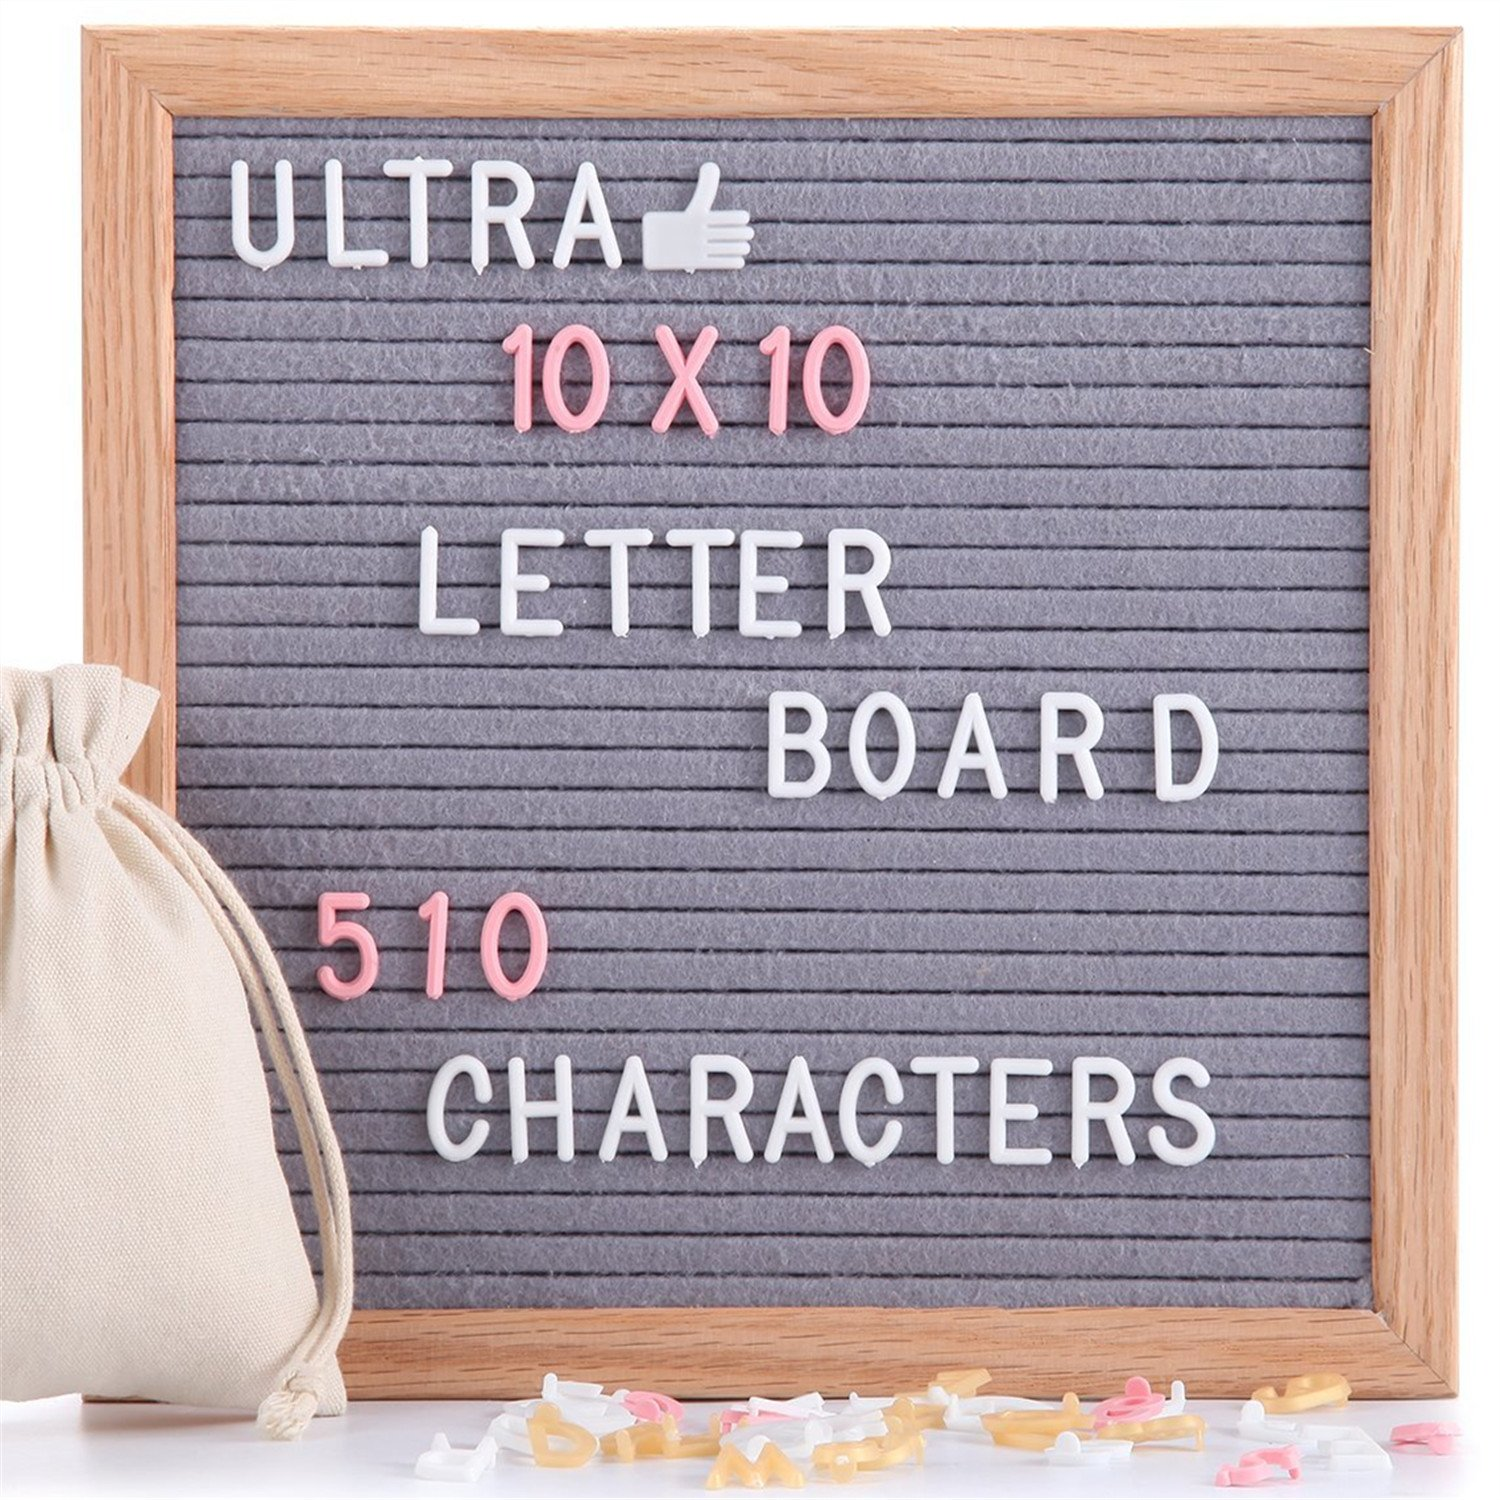 Felt Letter Board Gray with Stand, with 510 PCS Changeable Letters & Lovely Emojis, 10x10 inches Solid Oak Wood Material, Decorative Display Board Designed with Metal Hook on The Wall (Grey) by LifeEase (Image #1)